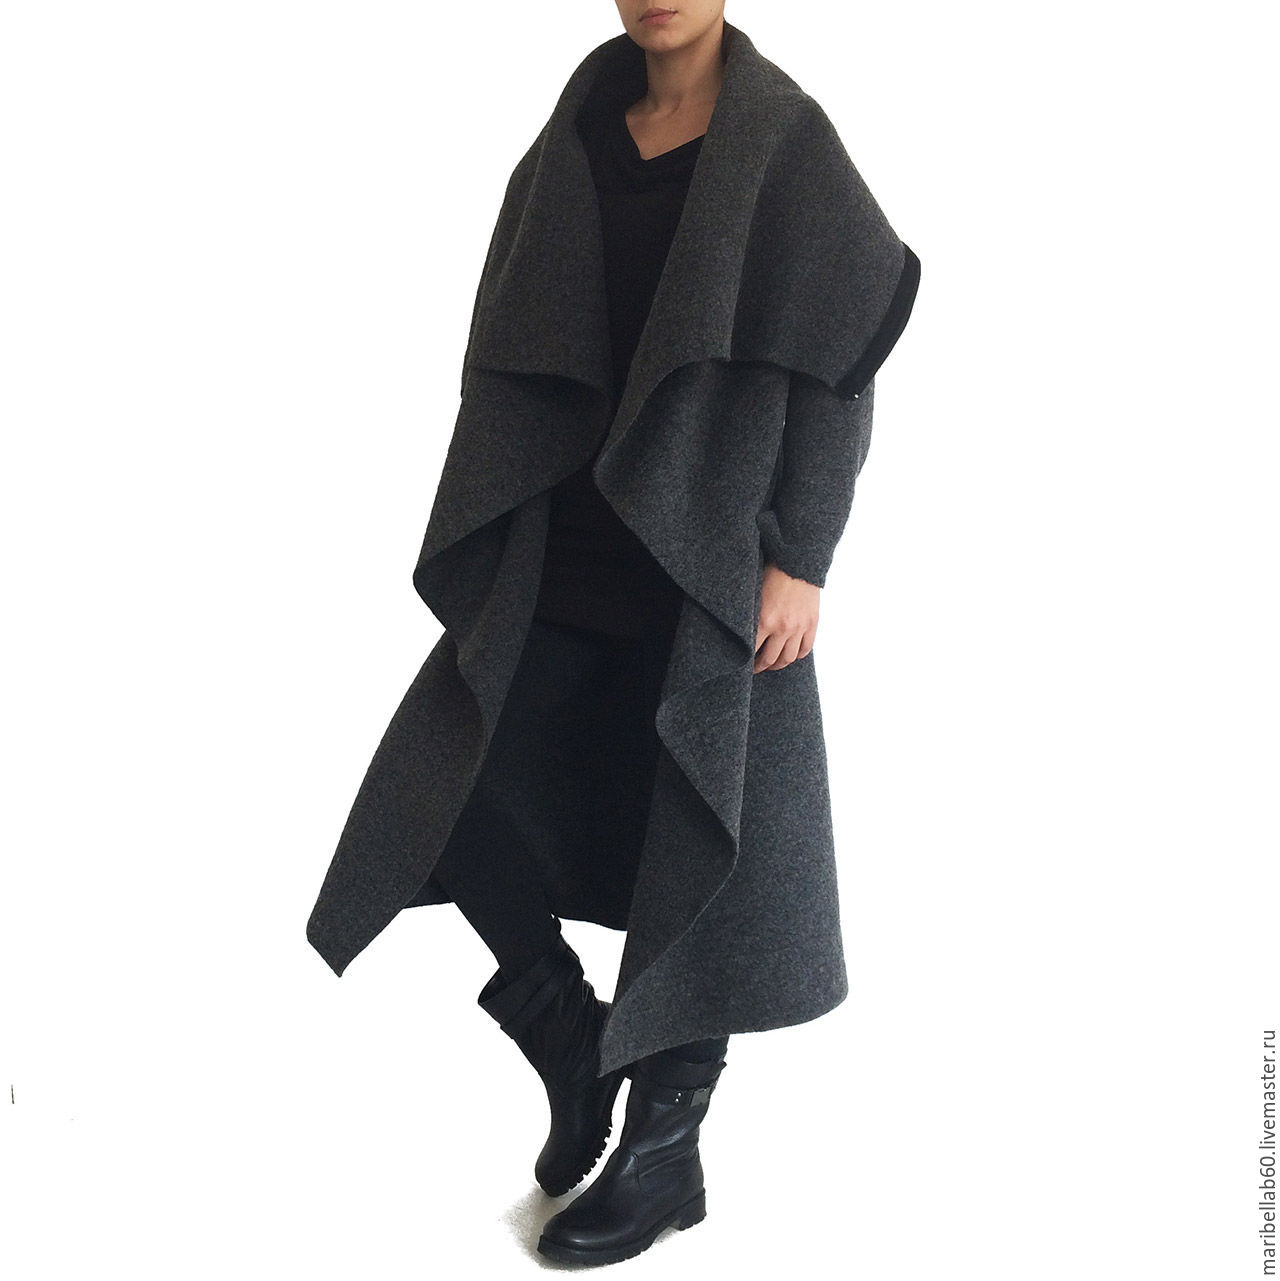 Gray coat winter coat Fashion coat Winter coat SAMURAI, Coats, Sofia,  Фото №1